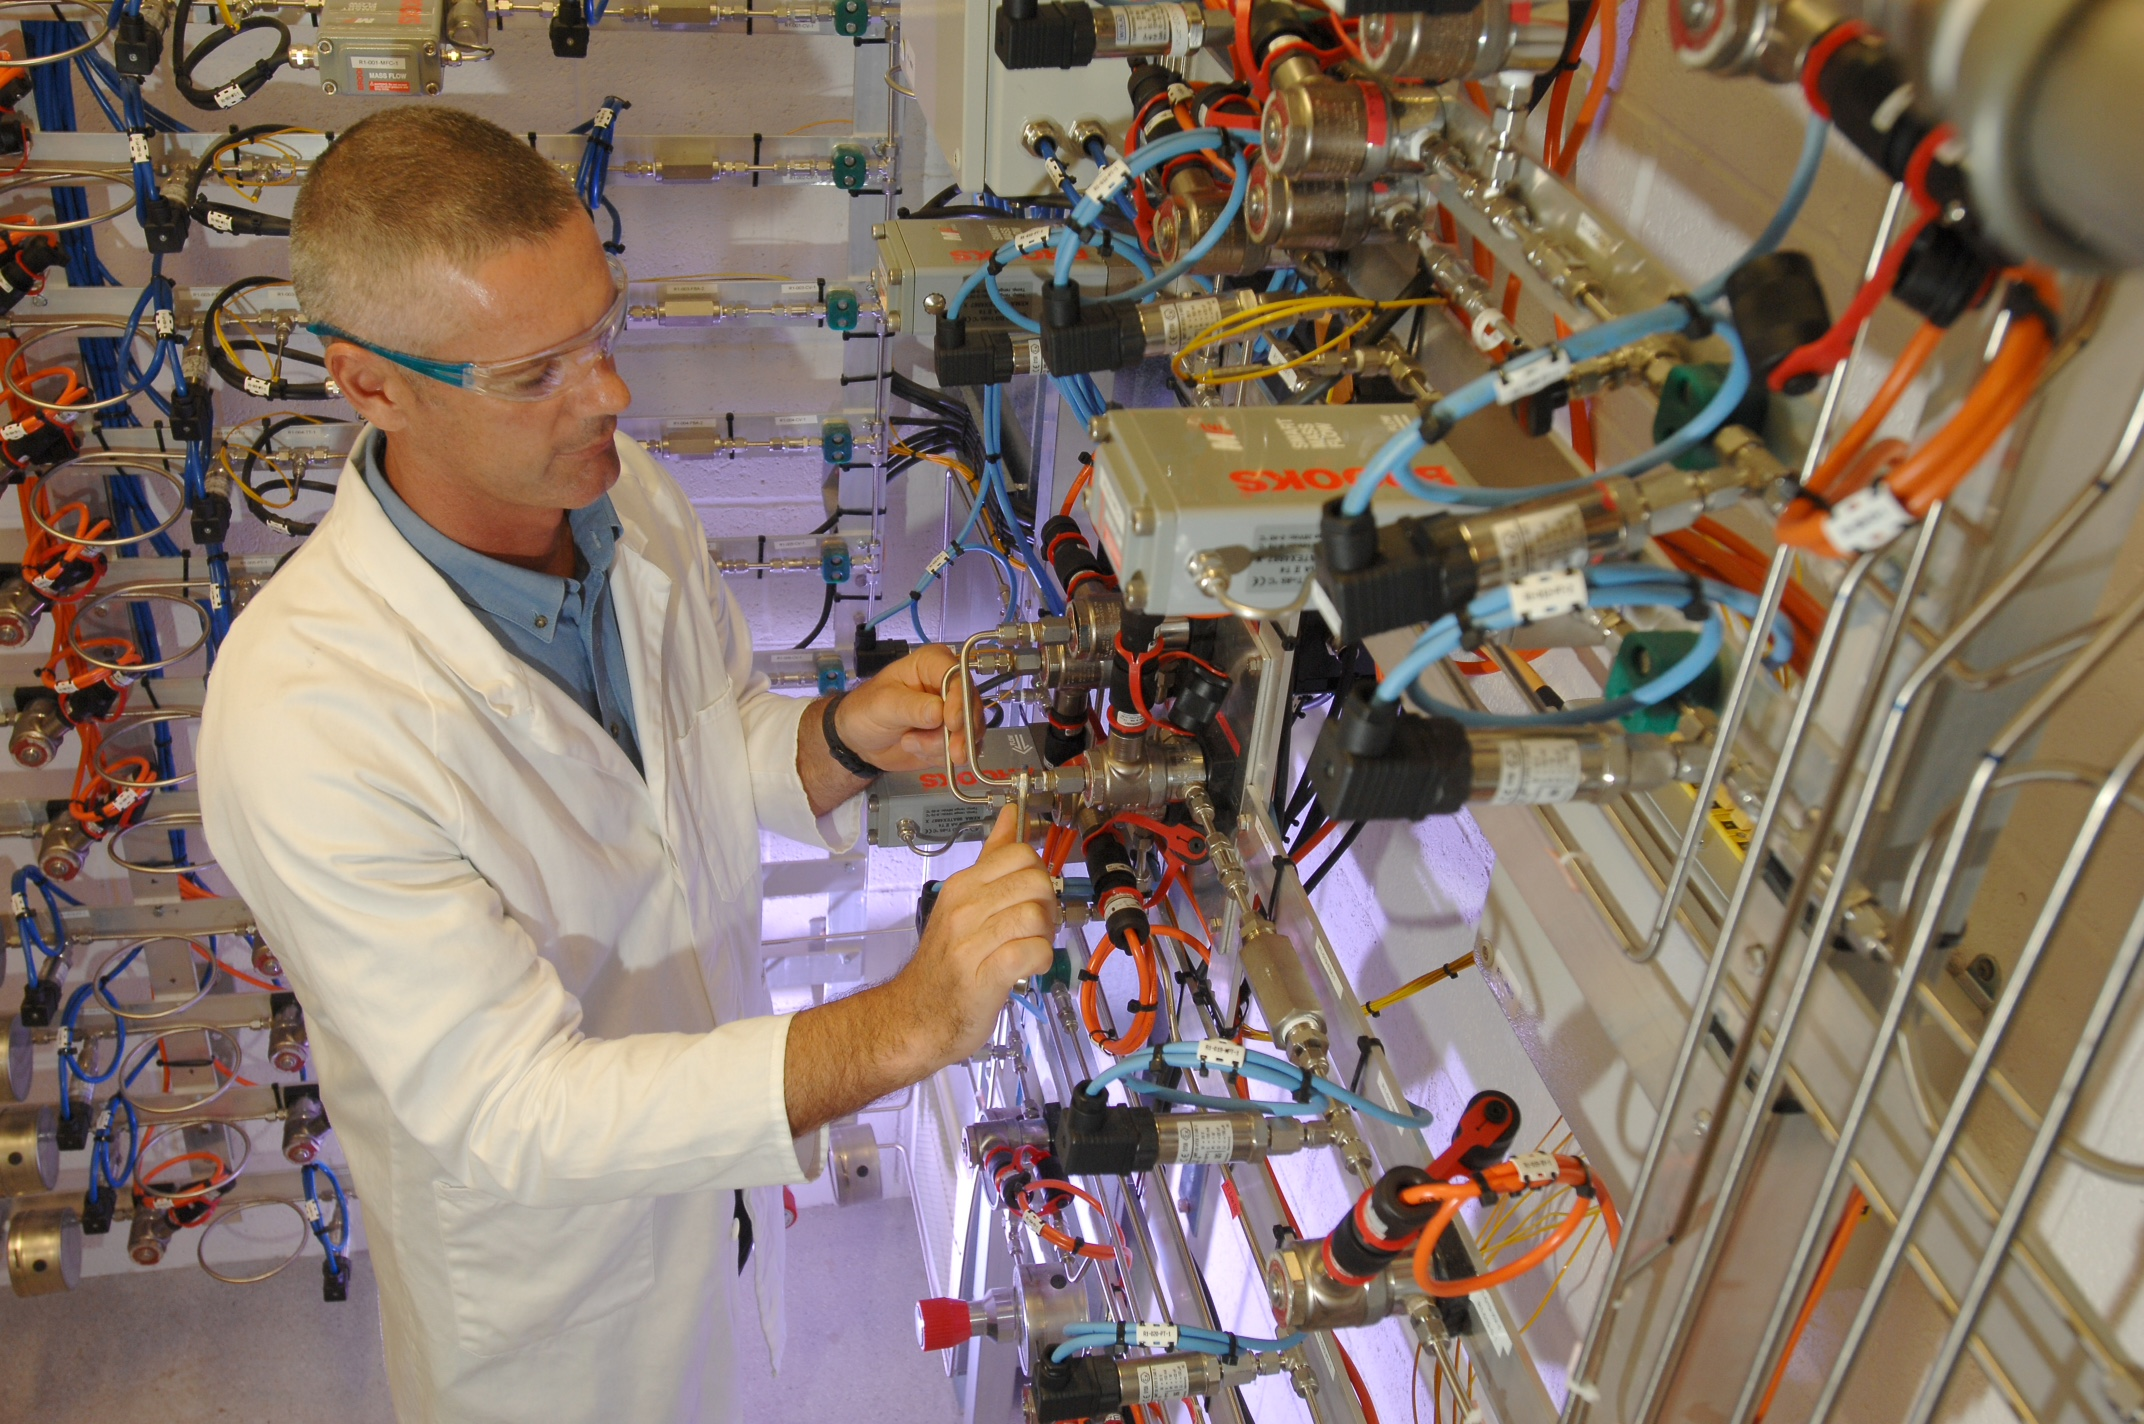 A male scientist in lab coat and safety glasses standing among racks of components